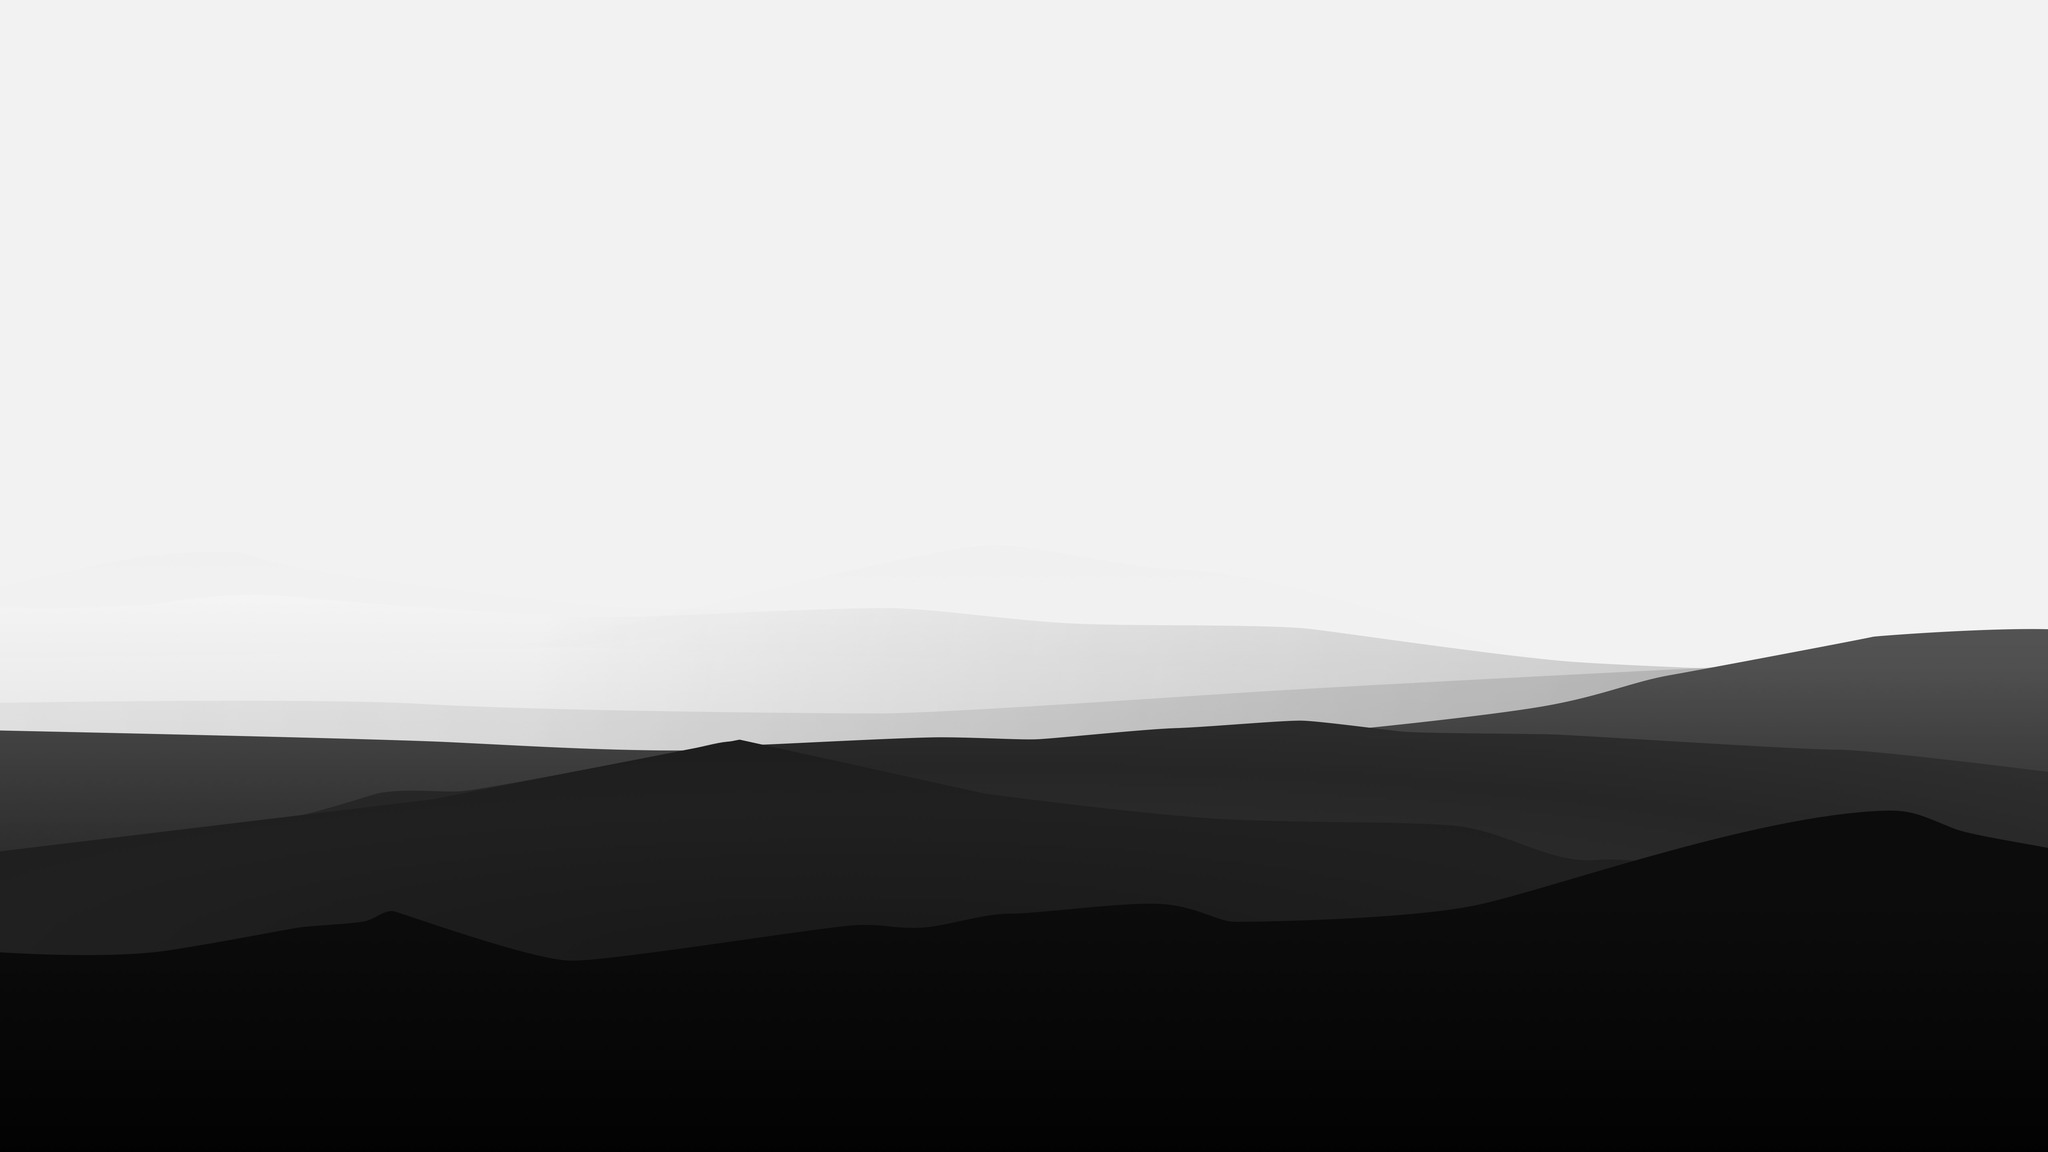 2048x1152 Minimalist Mountains Black And White 2048x1152